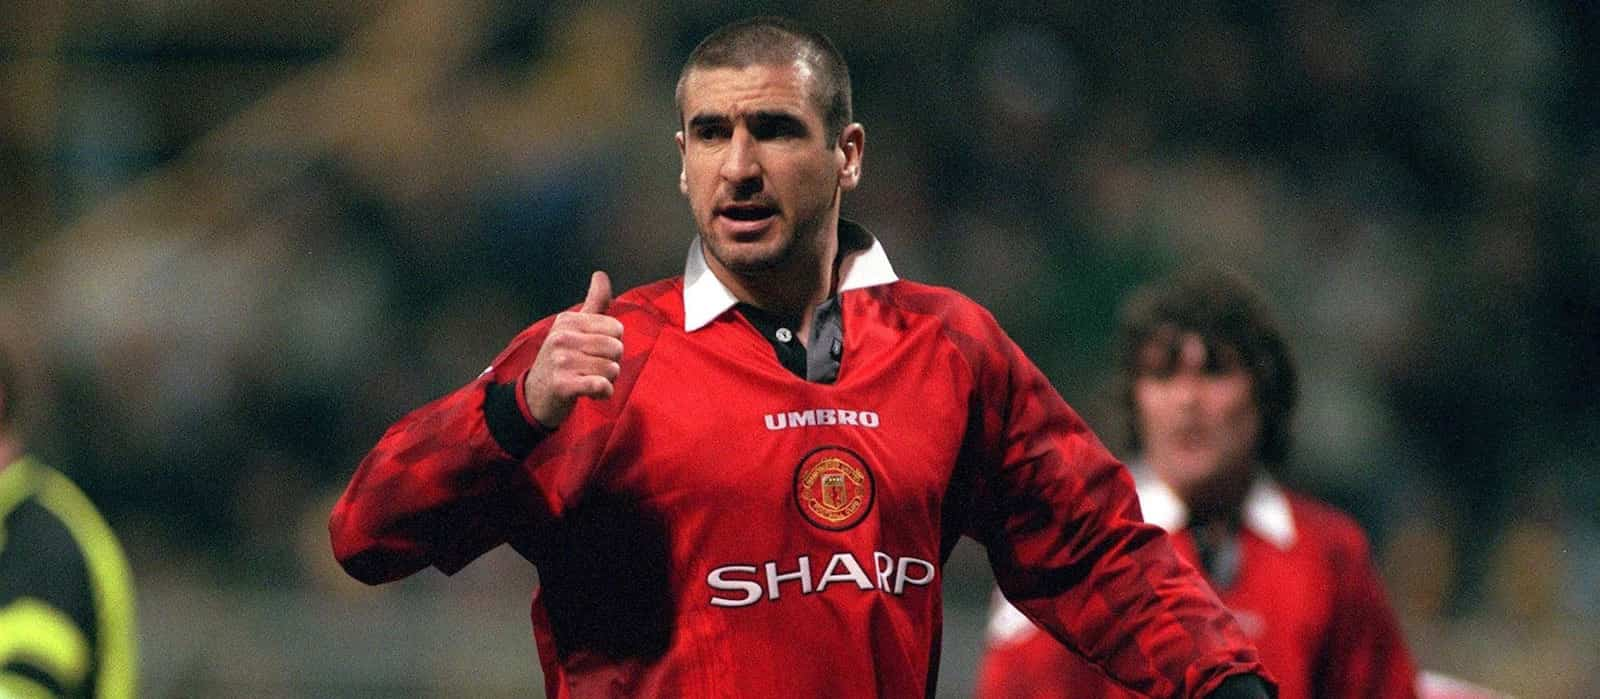 Eric Cantona: If Manchester United called me, I'd go